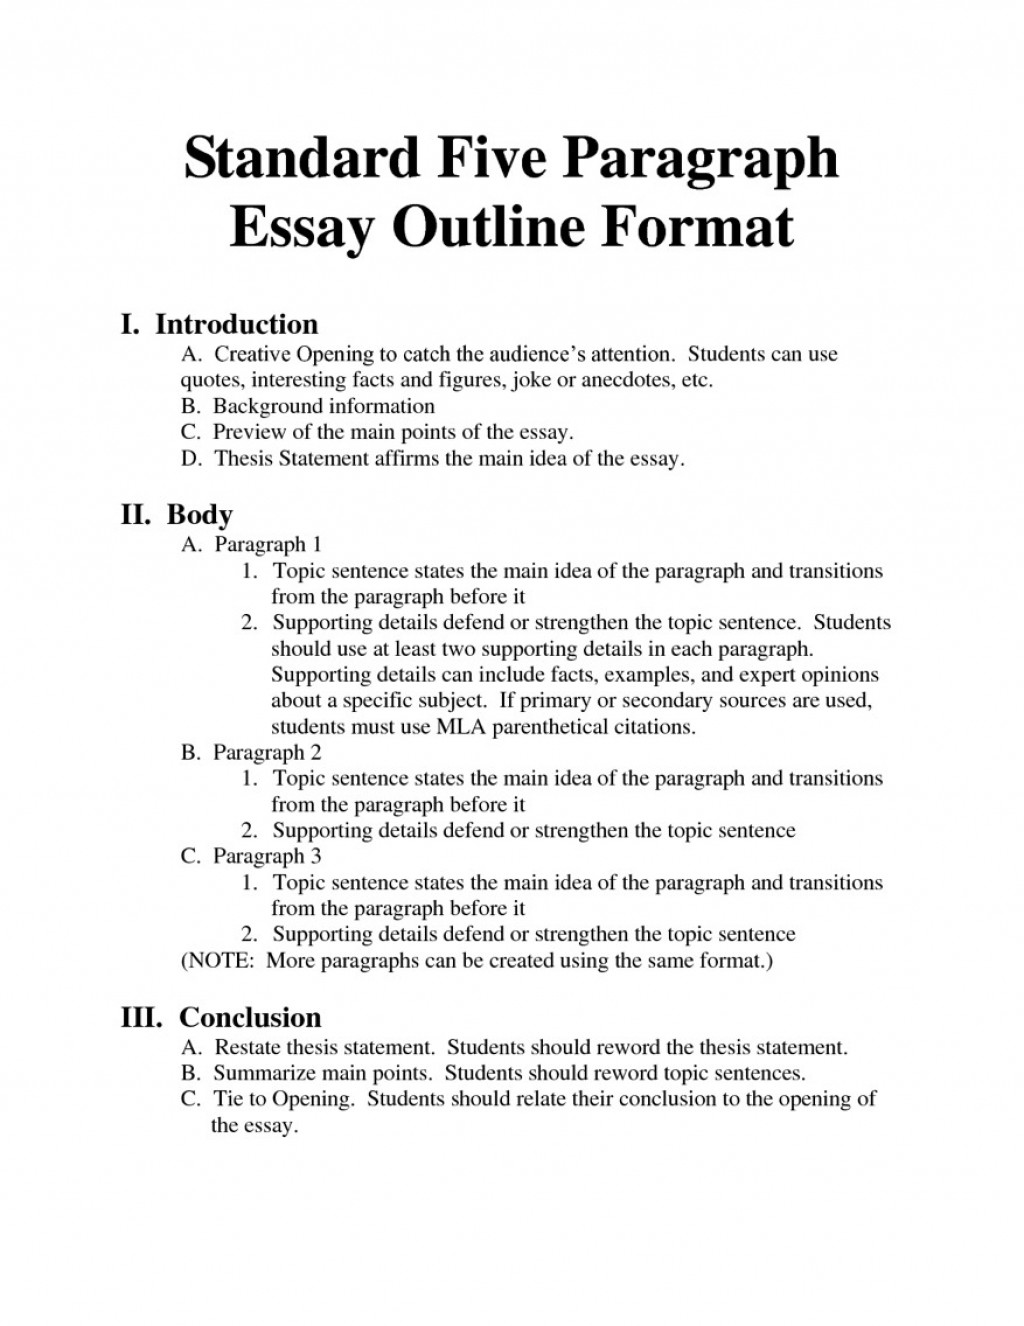 007 Essay Example Paragraph Best 5 Topics 7th Grade For Elementary Students Five List Large